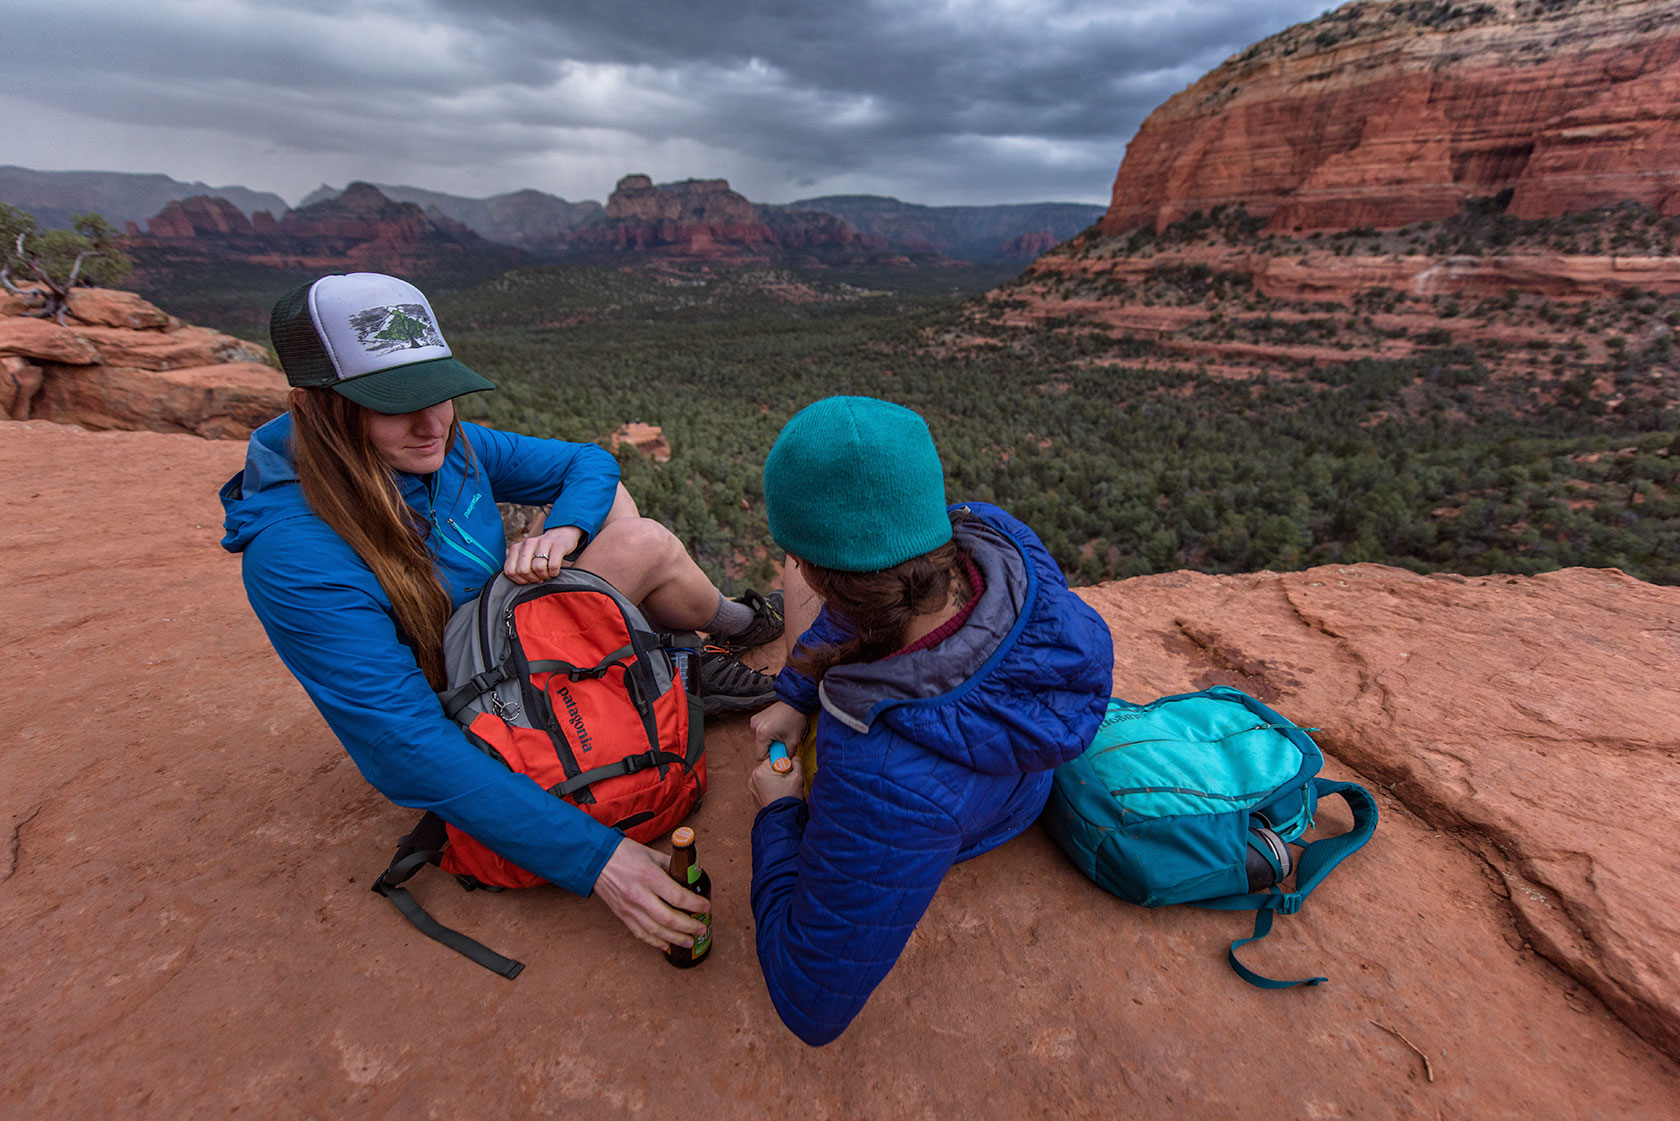 austin-trigg-patagonia-day-pack-sedona-arizona-lifestle-product-backpack-adventure-devils-bridge-rain-storm-beer.jpg